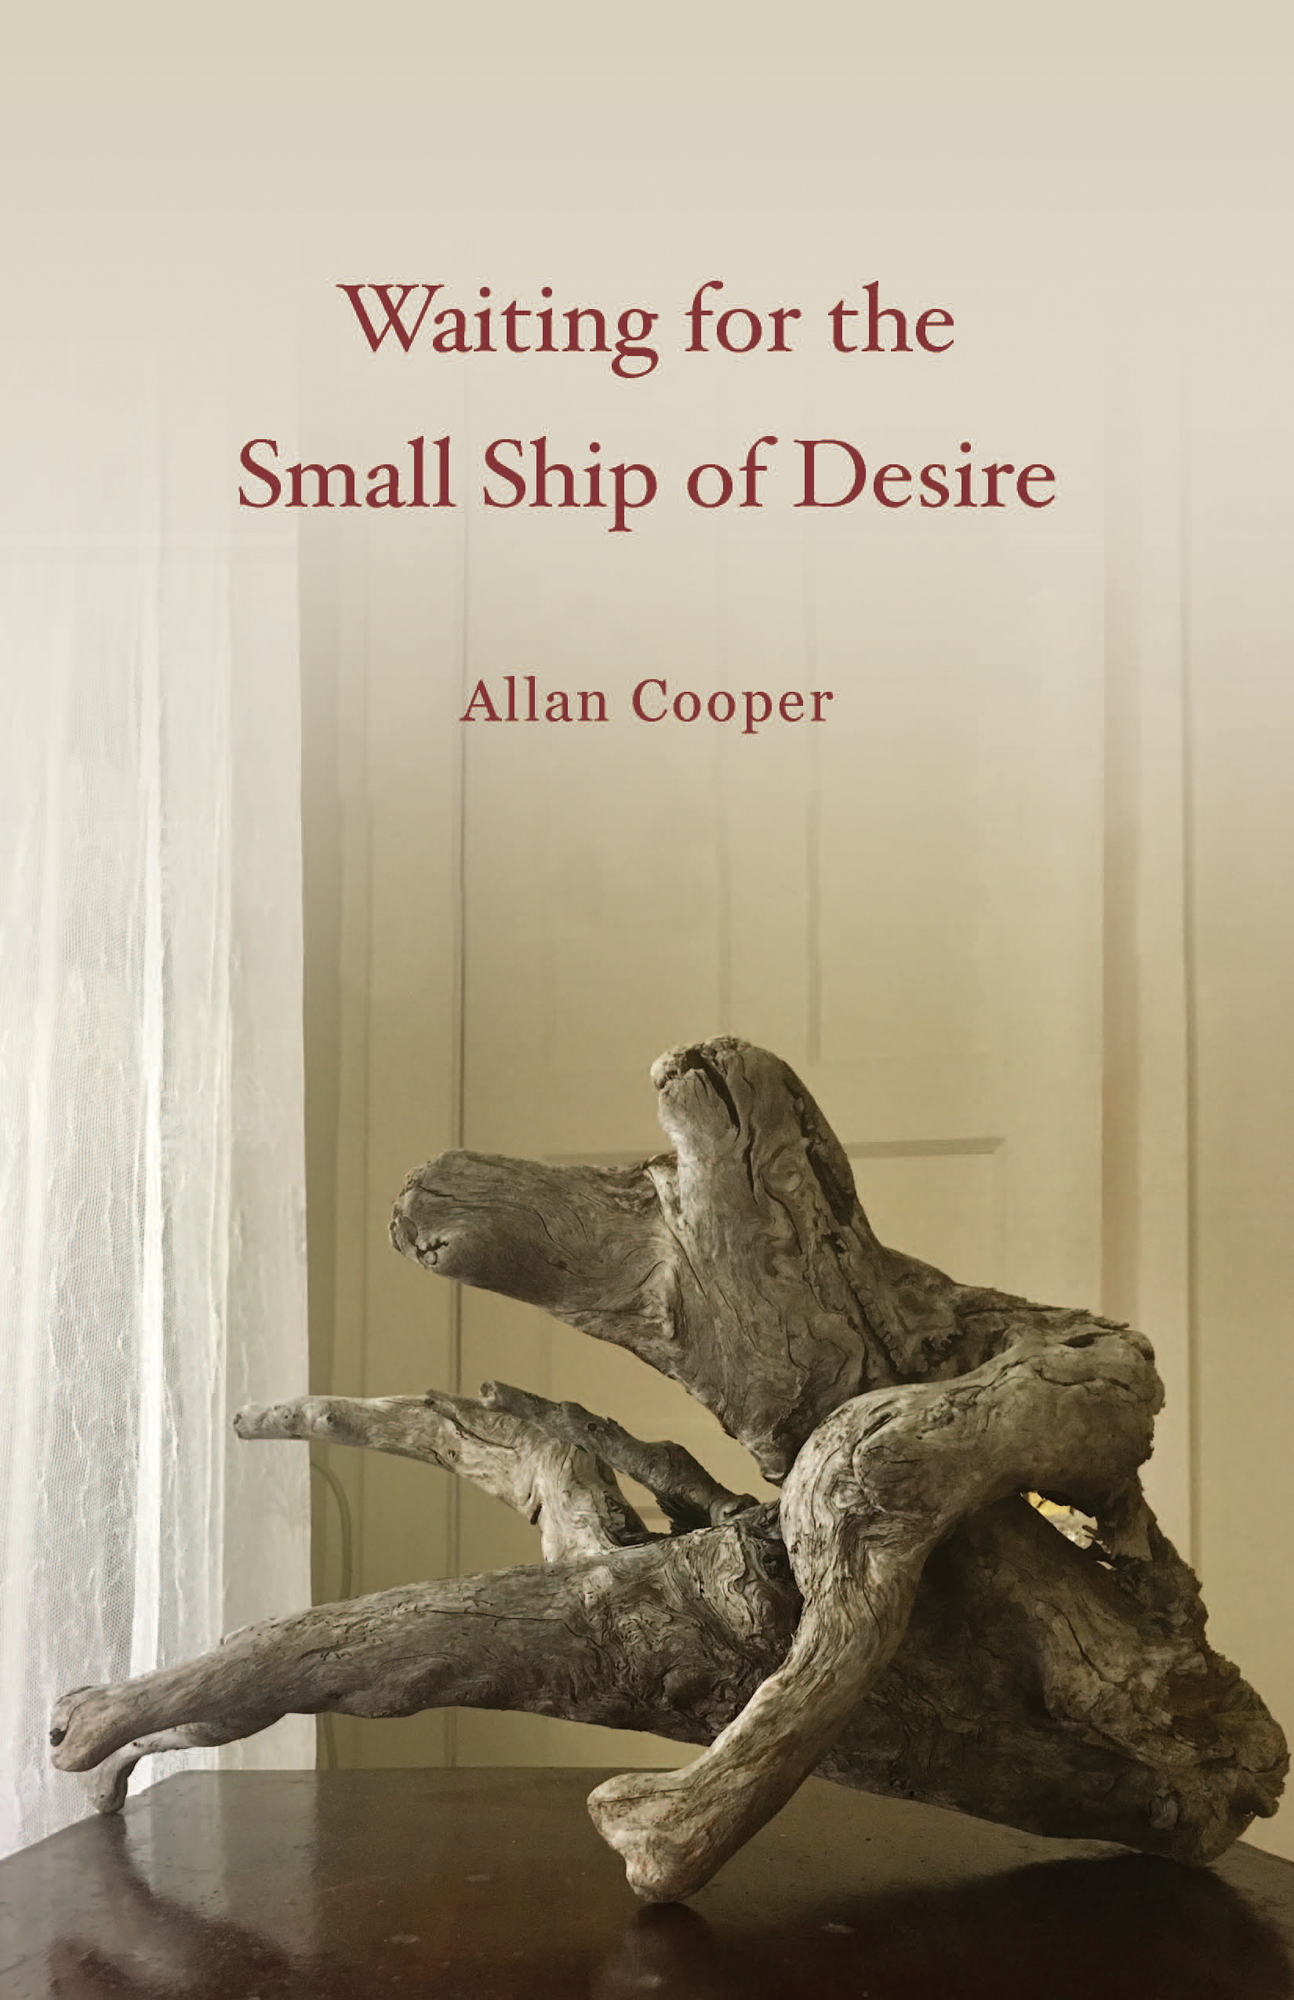 Waiting for the Small Ship of Desire